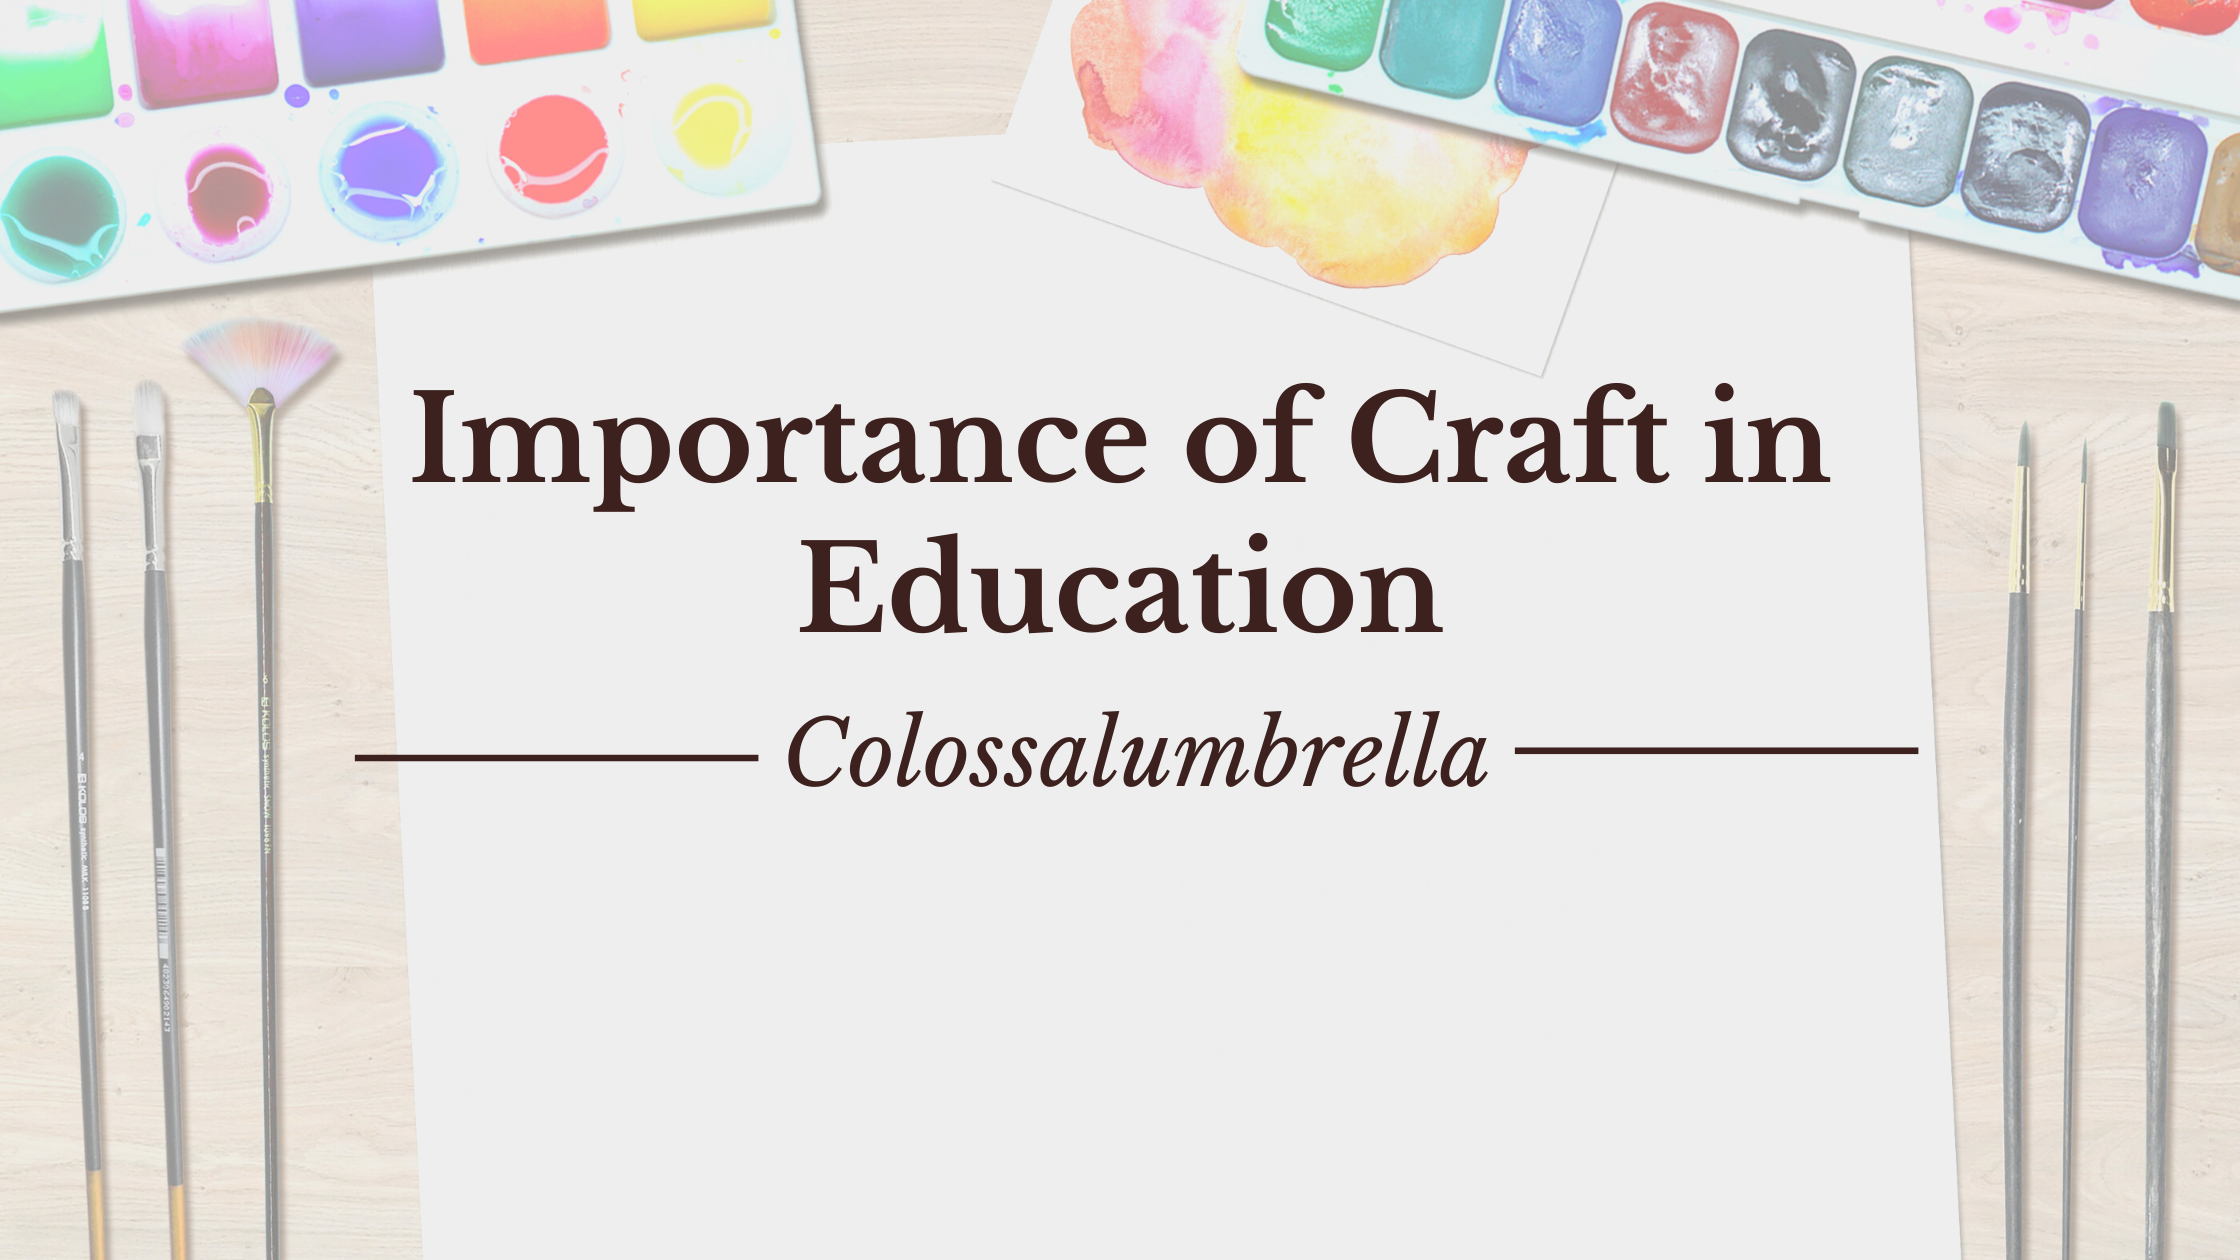 Importance of craft in education